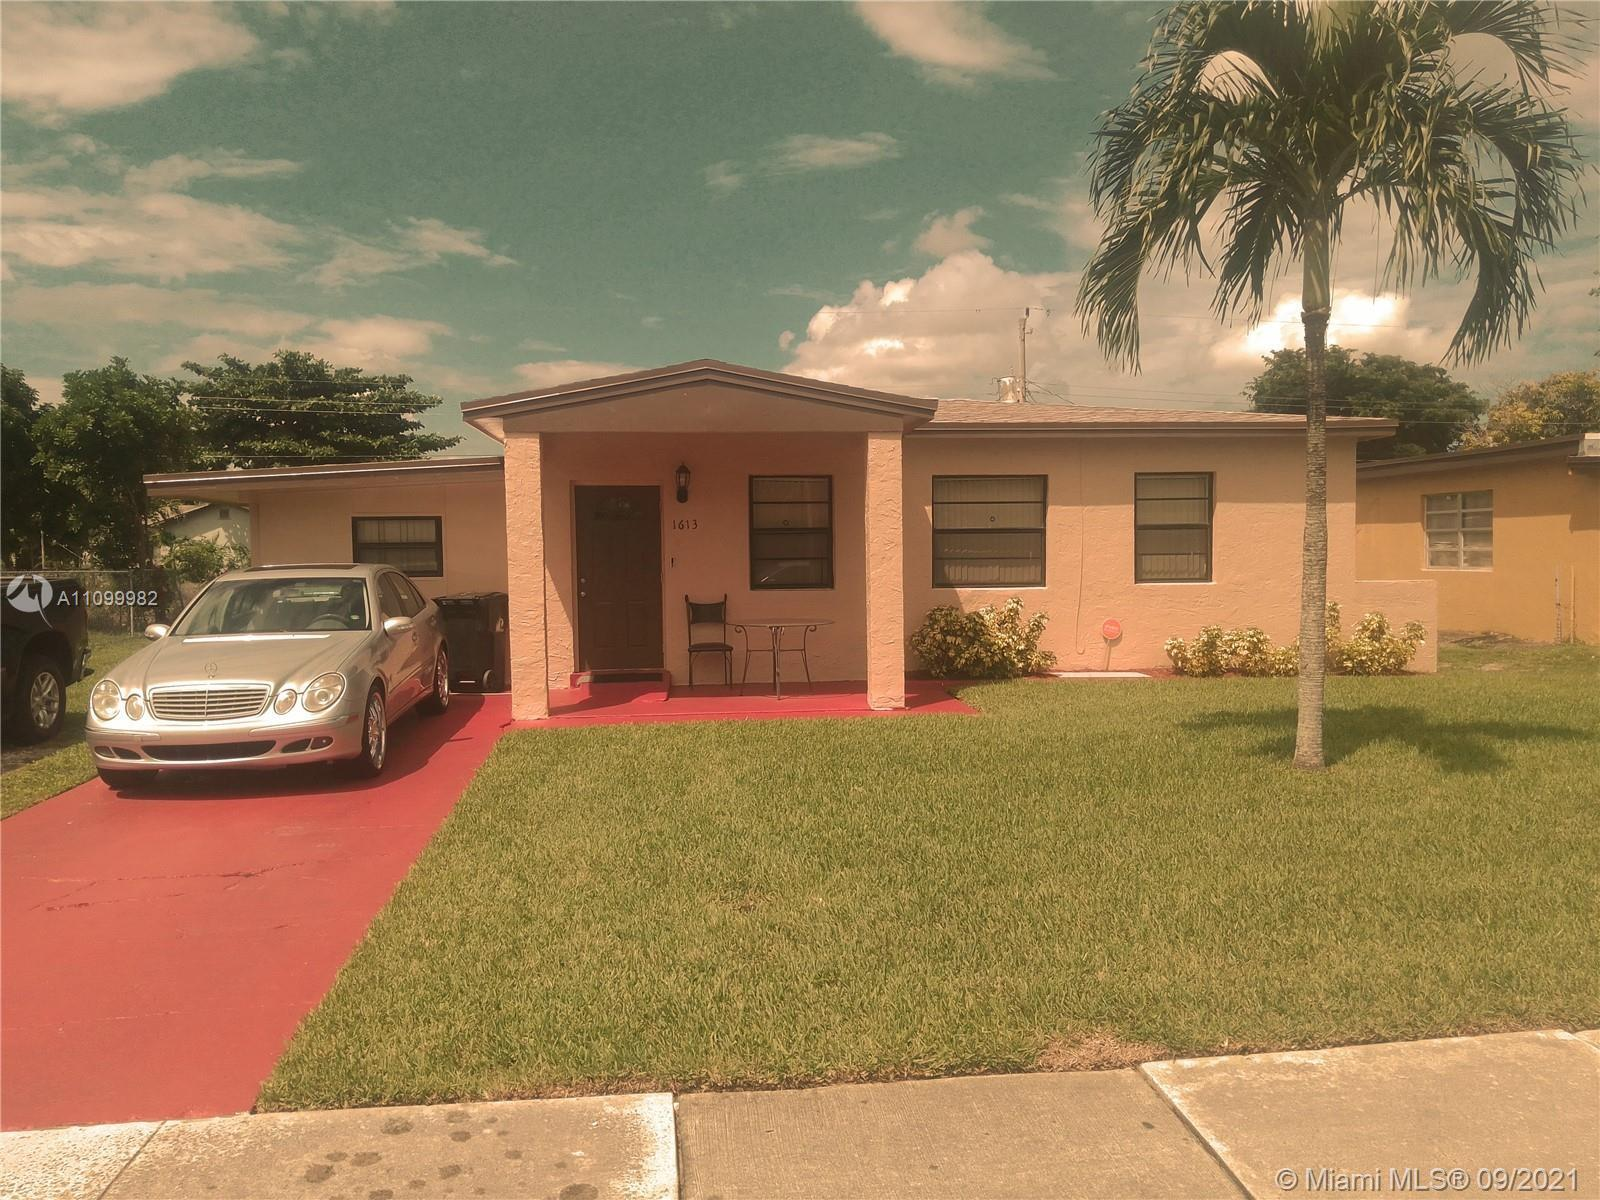 Price Reduced!! Move in ready updated home. Easy access to highways, Beach, Shopping, etc. Well main